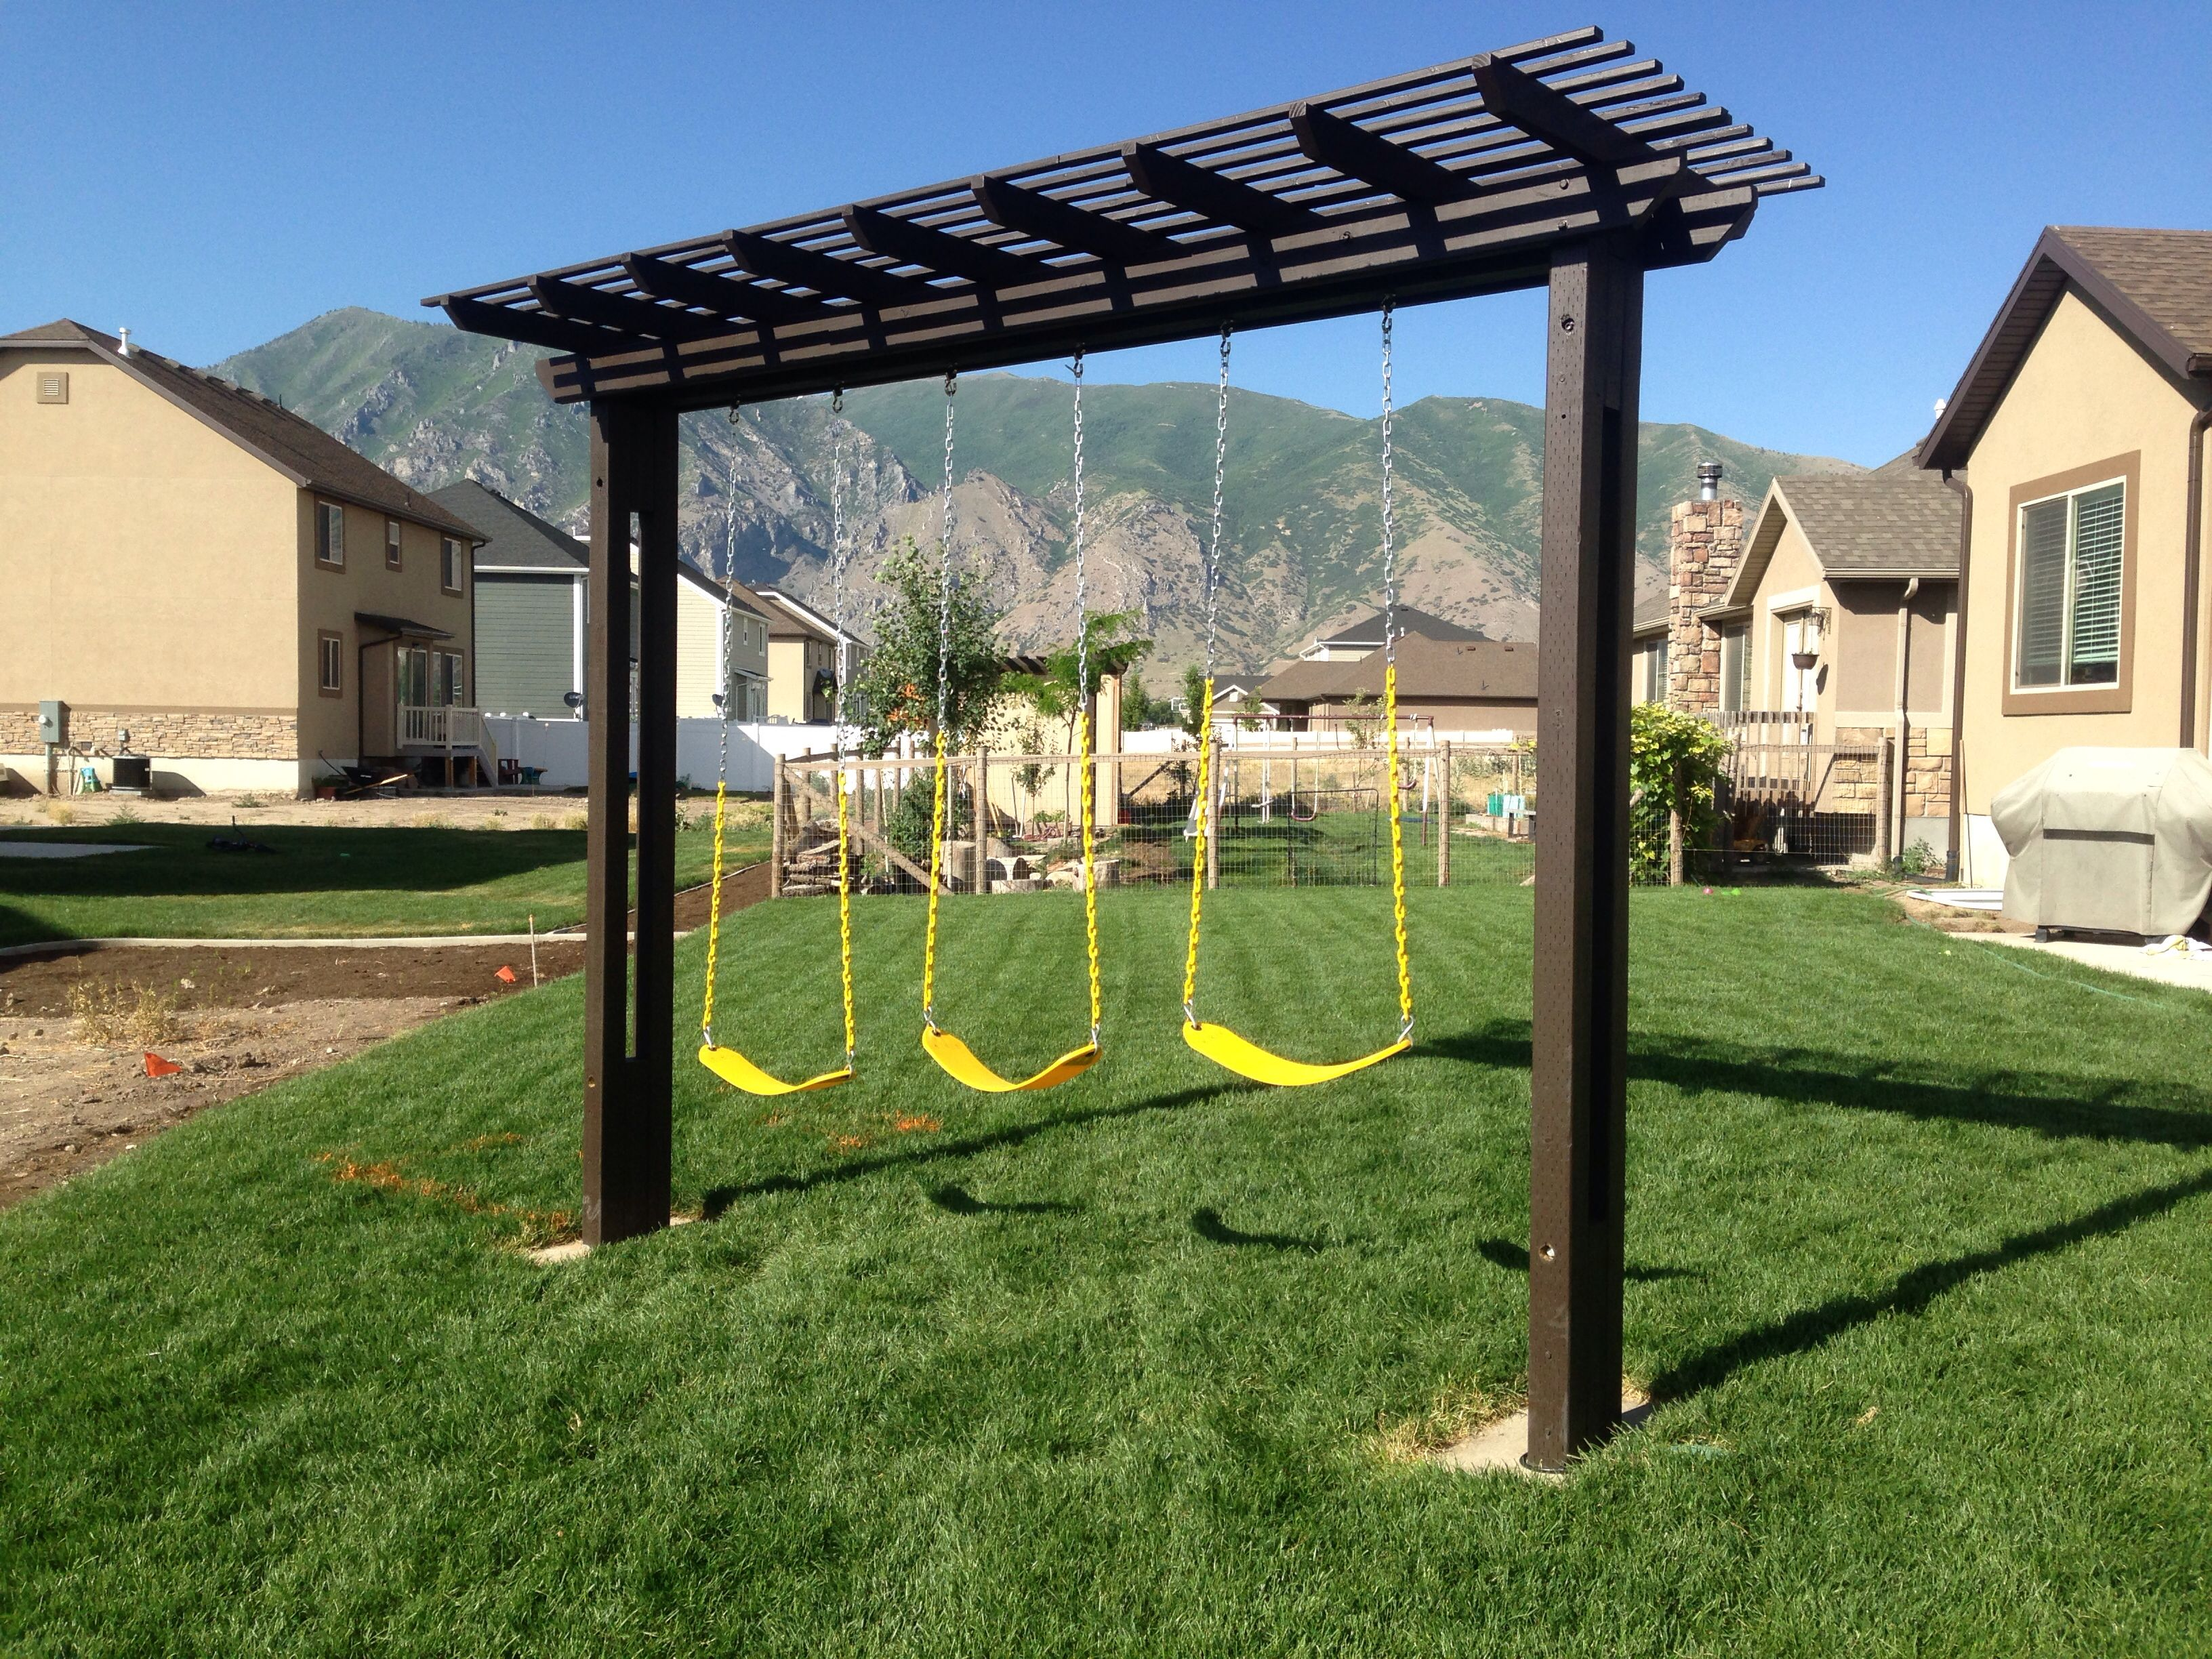 Pergola swing set for the kids pinterest pergola swing pergolas and swings - Arbor bench plans set ...